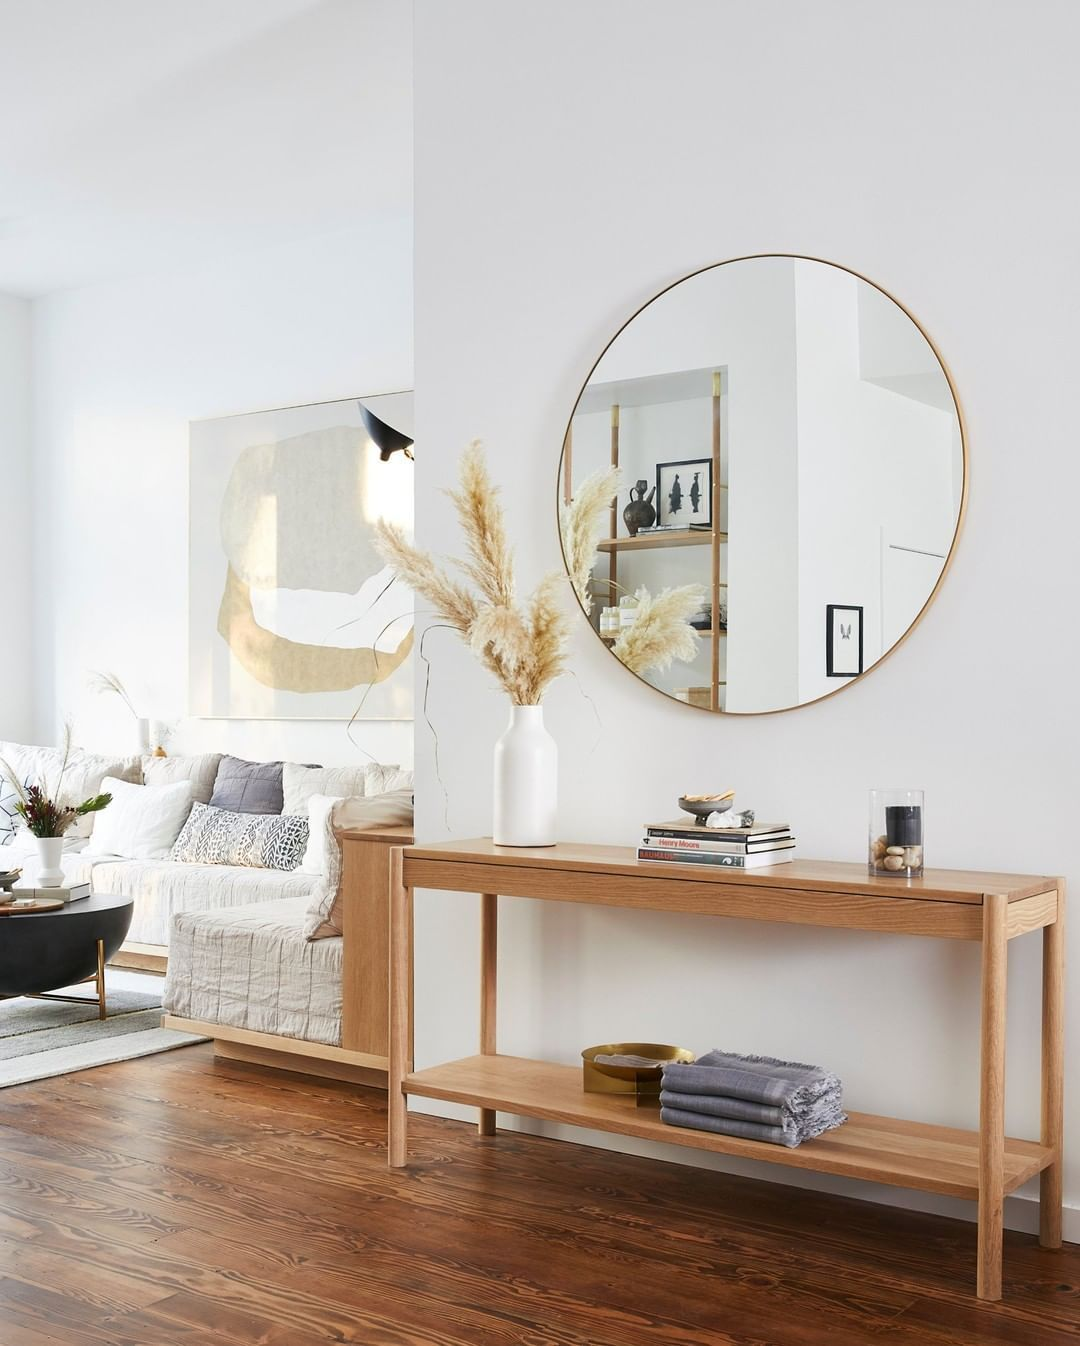 Home Decor Circle Mirror Living Room White And Wood Interior Design Havenlylivingroom Home D Living Room Mirrors Havenly Living Room Living Room White Mirror living room ideas